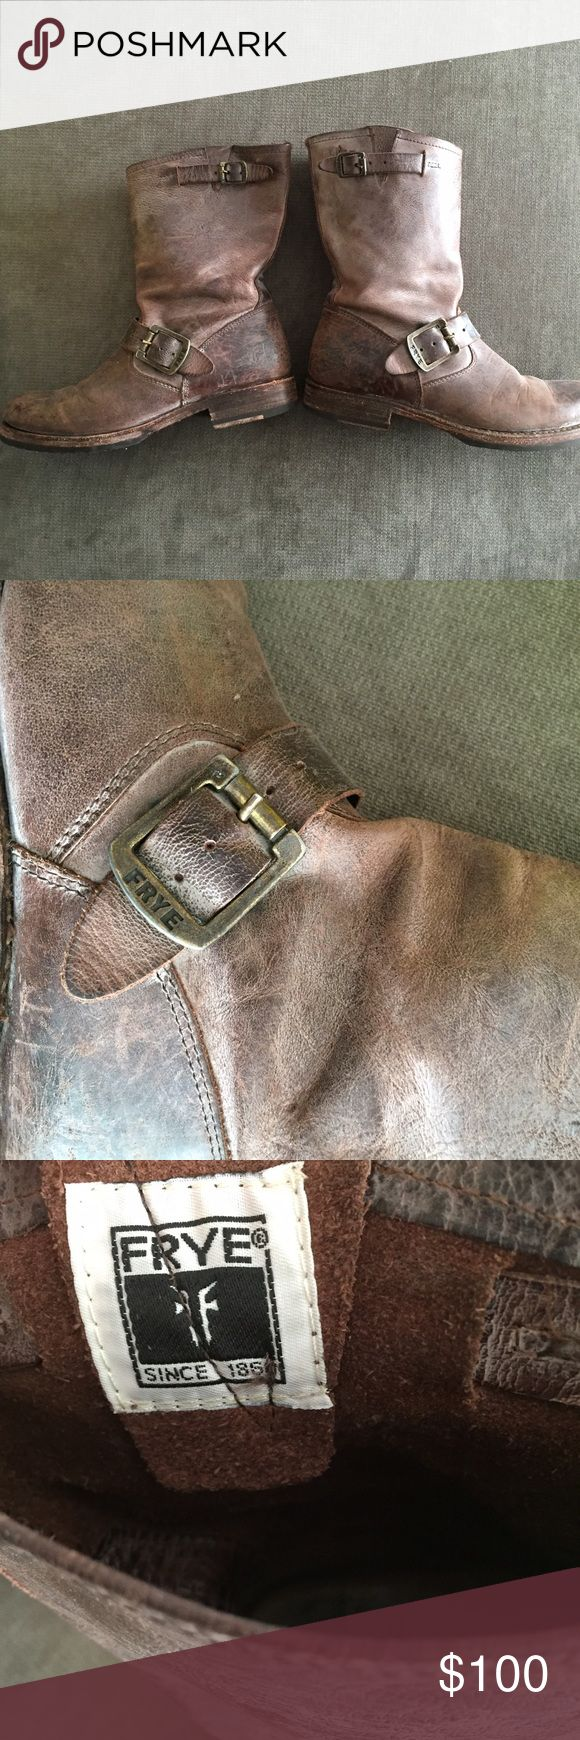 Frye Veronica Short Boot Super cute and durable boot! Too small on me now. Frye Shoes Combat & Moto Boots